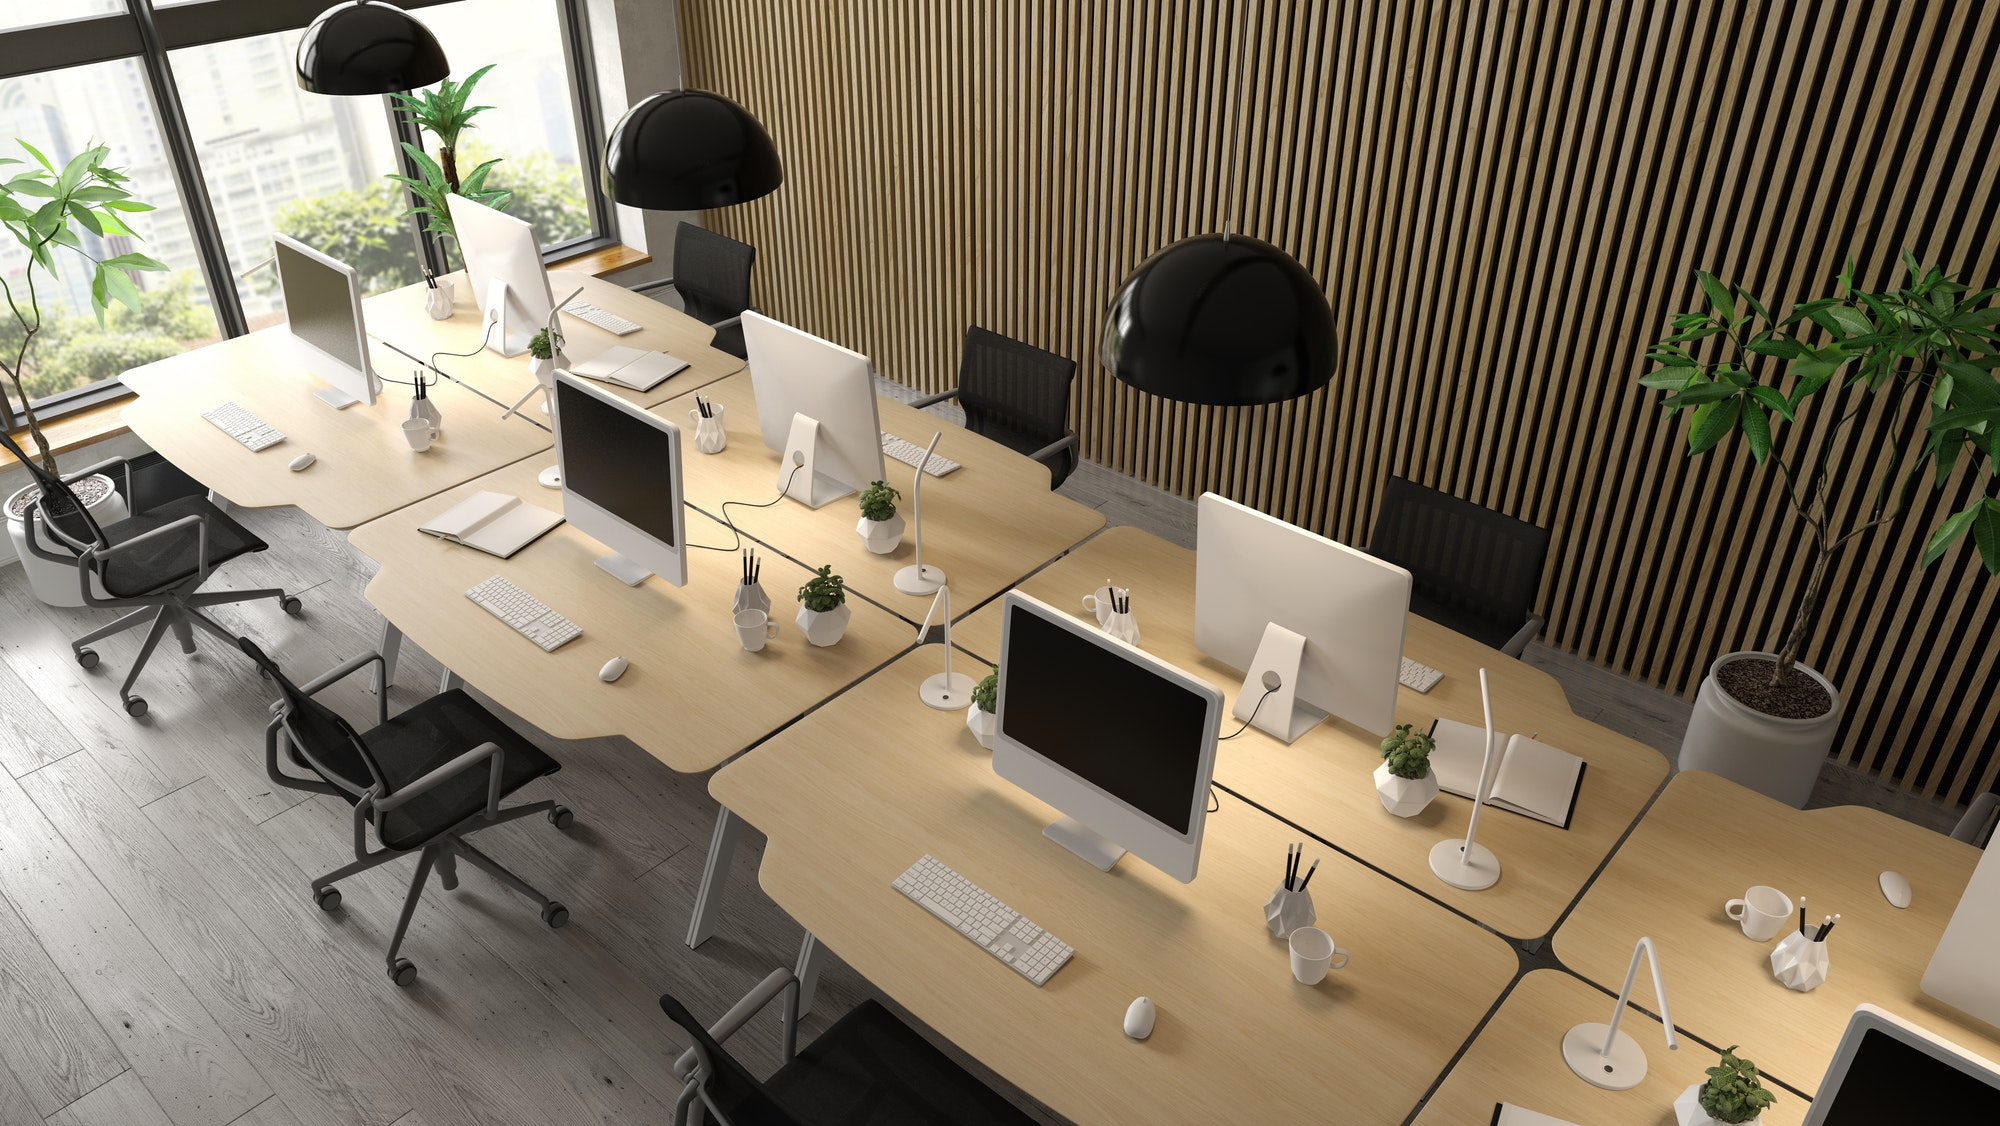 Interior of modern office room 3D rendering